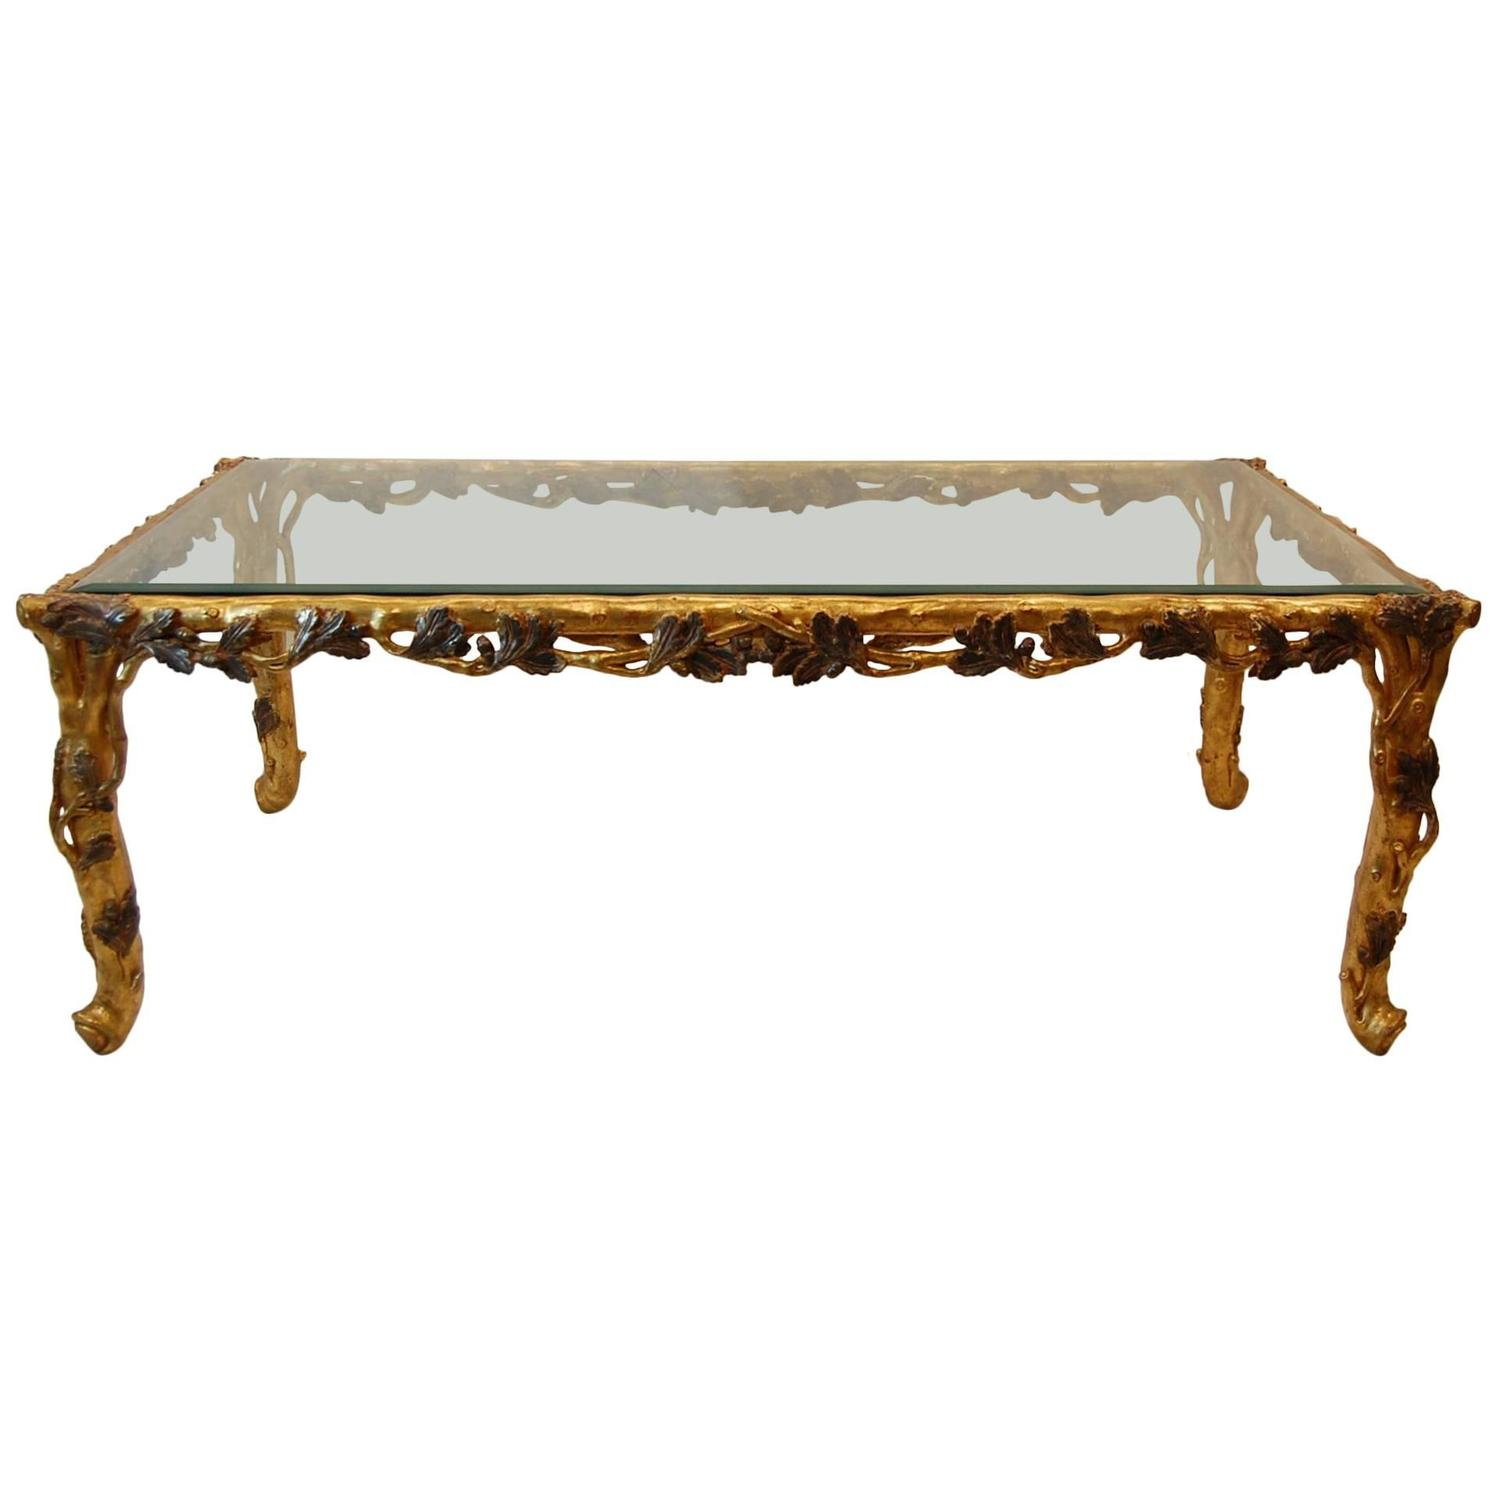 Italian gold leaf carved wood coffee table with beveled glass top for sale at 1stdibs Coffee table antique